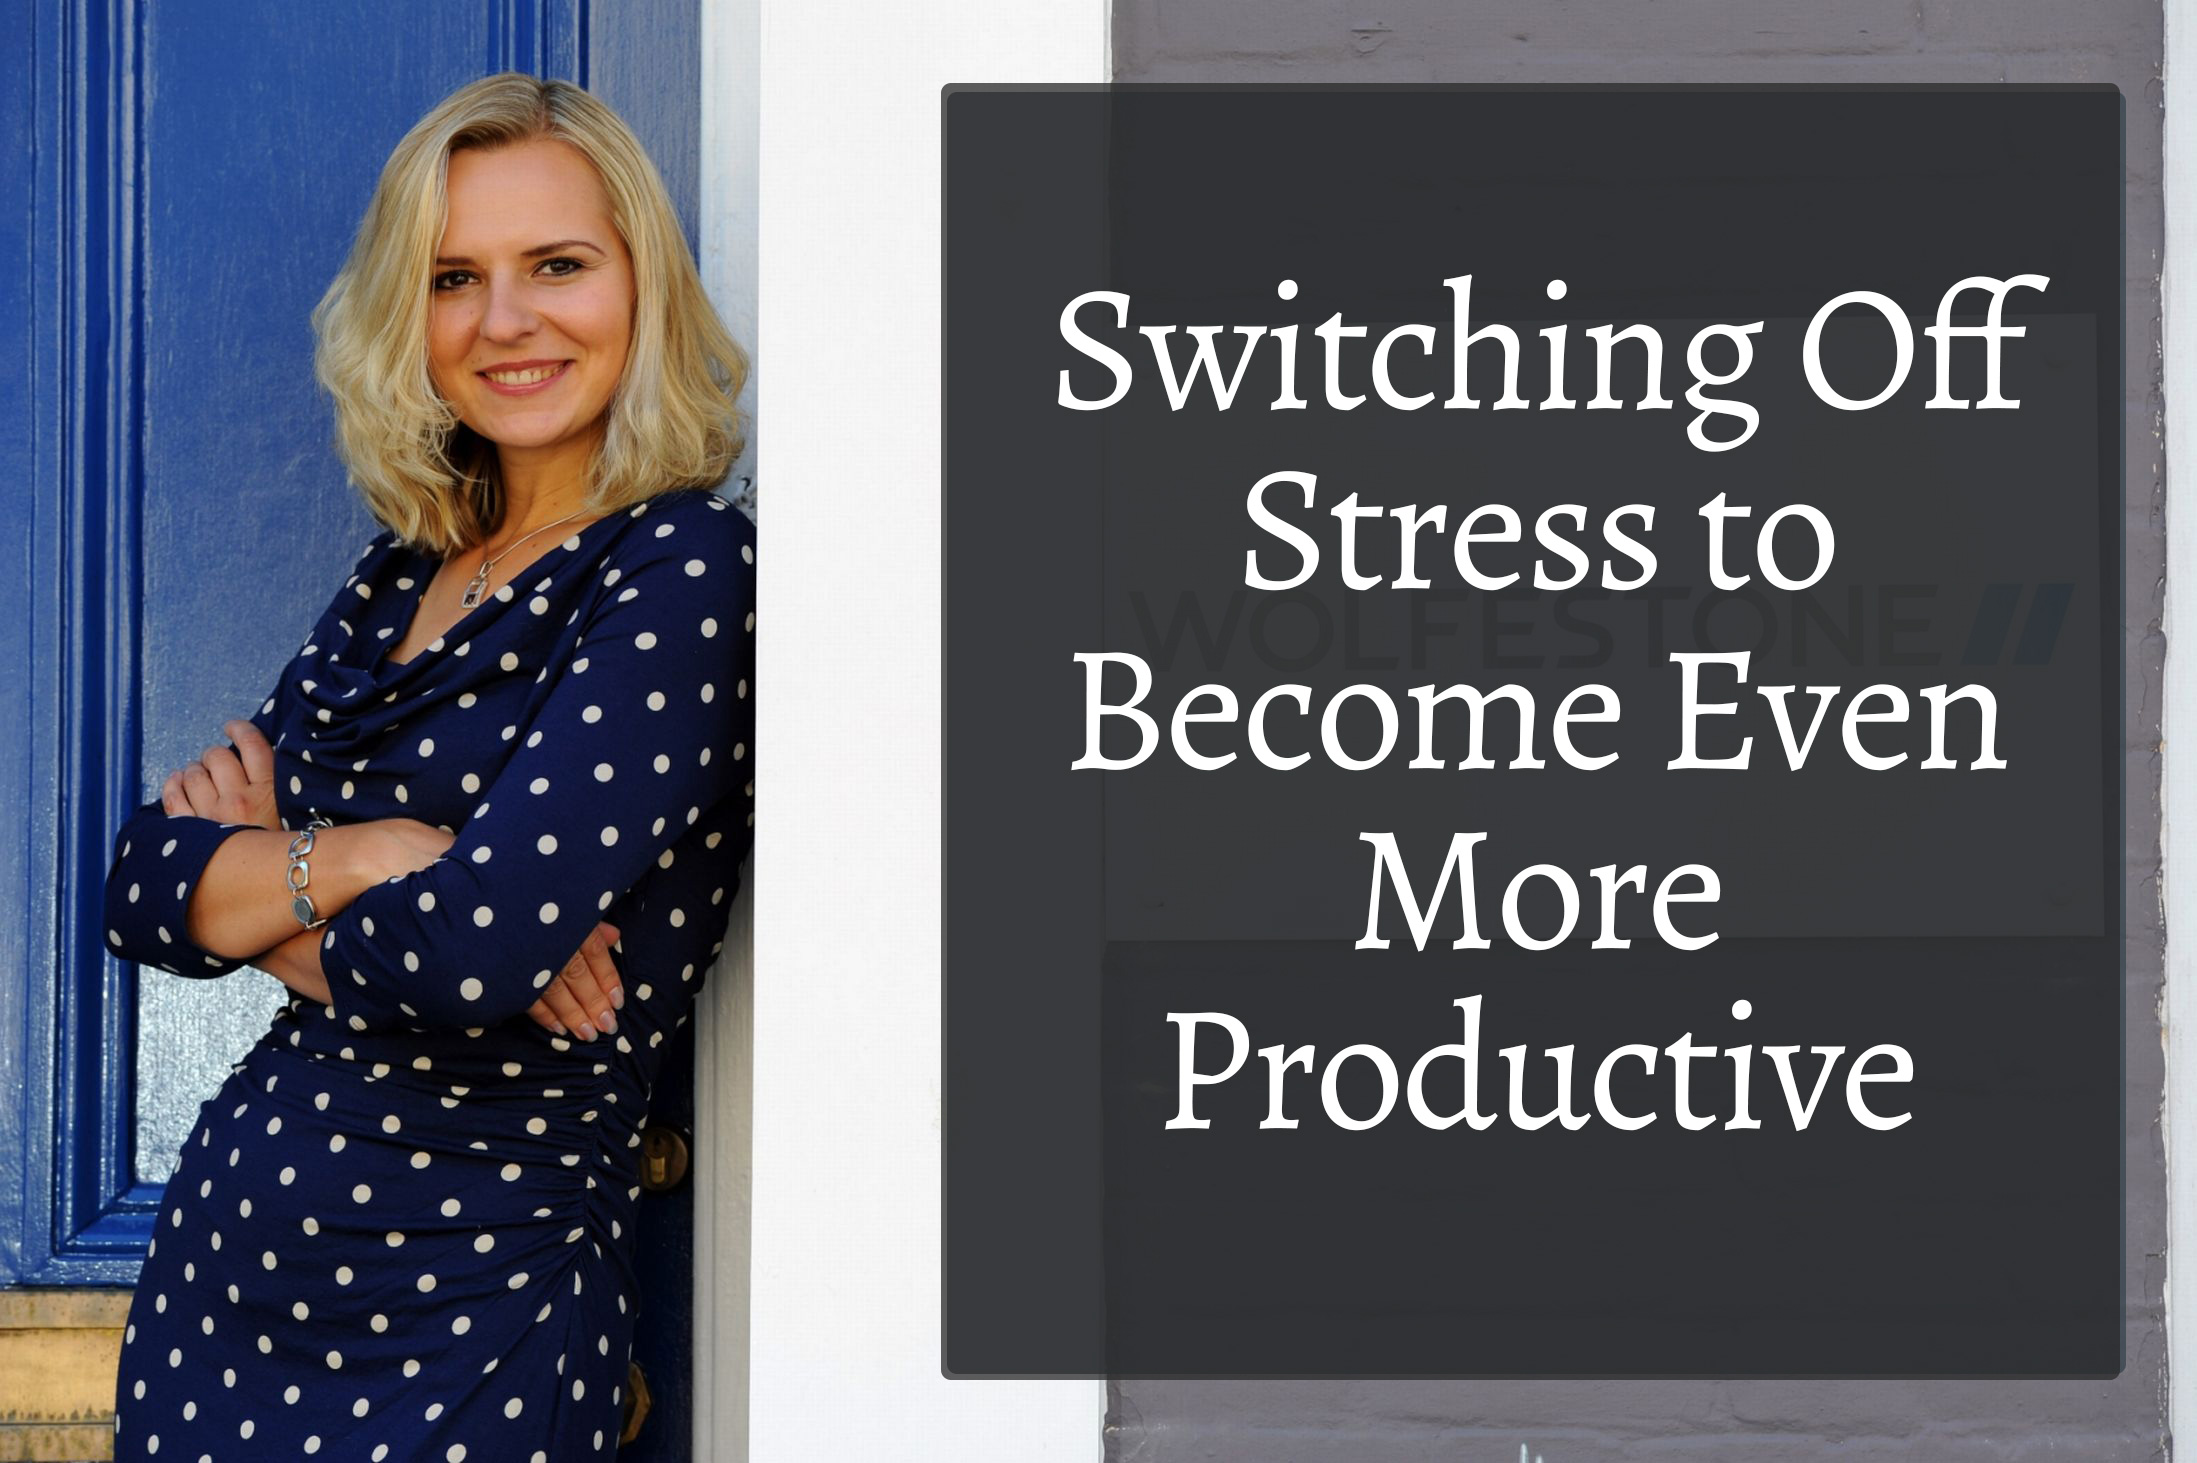 Switching Off Stress to Become Even More Productive